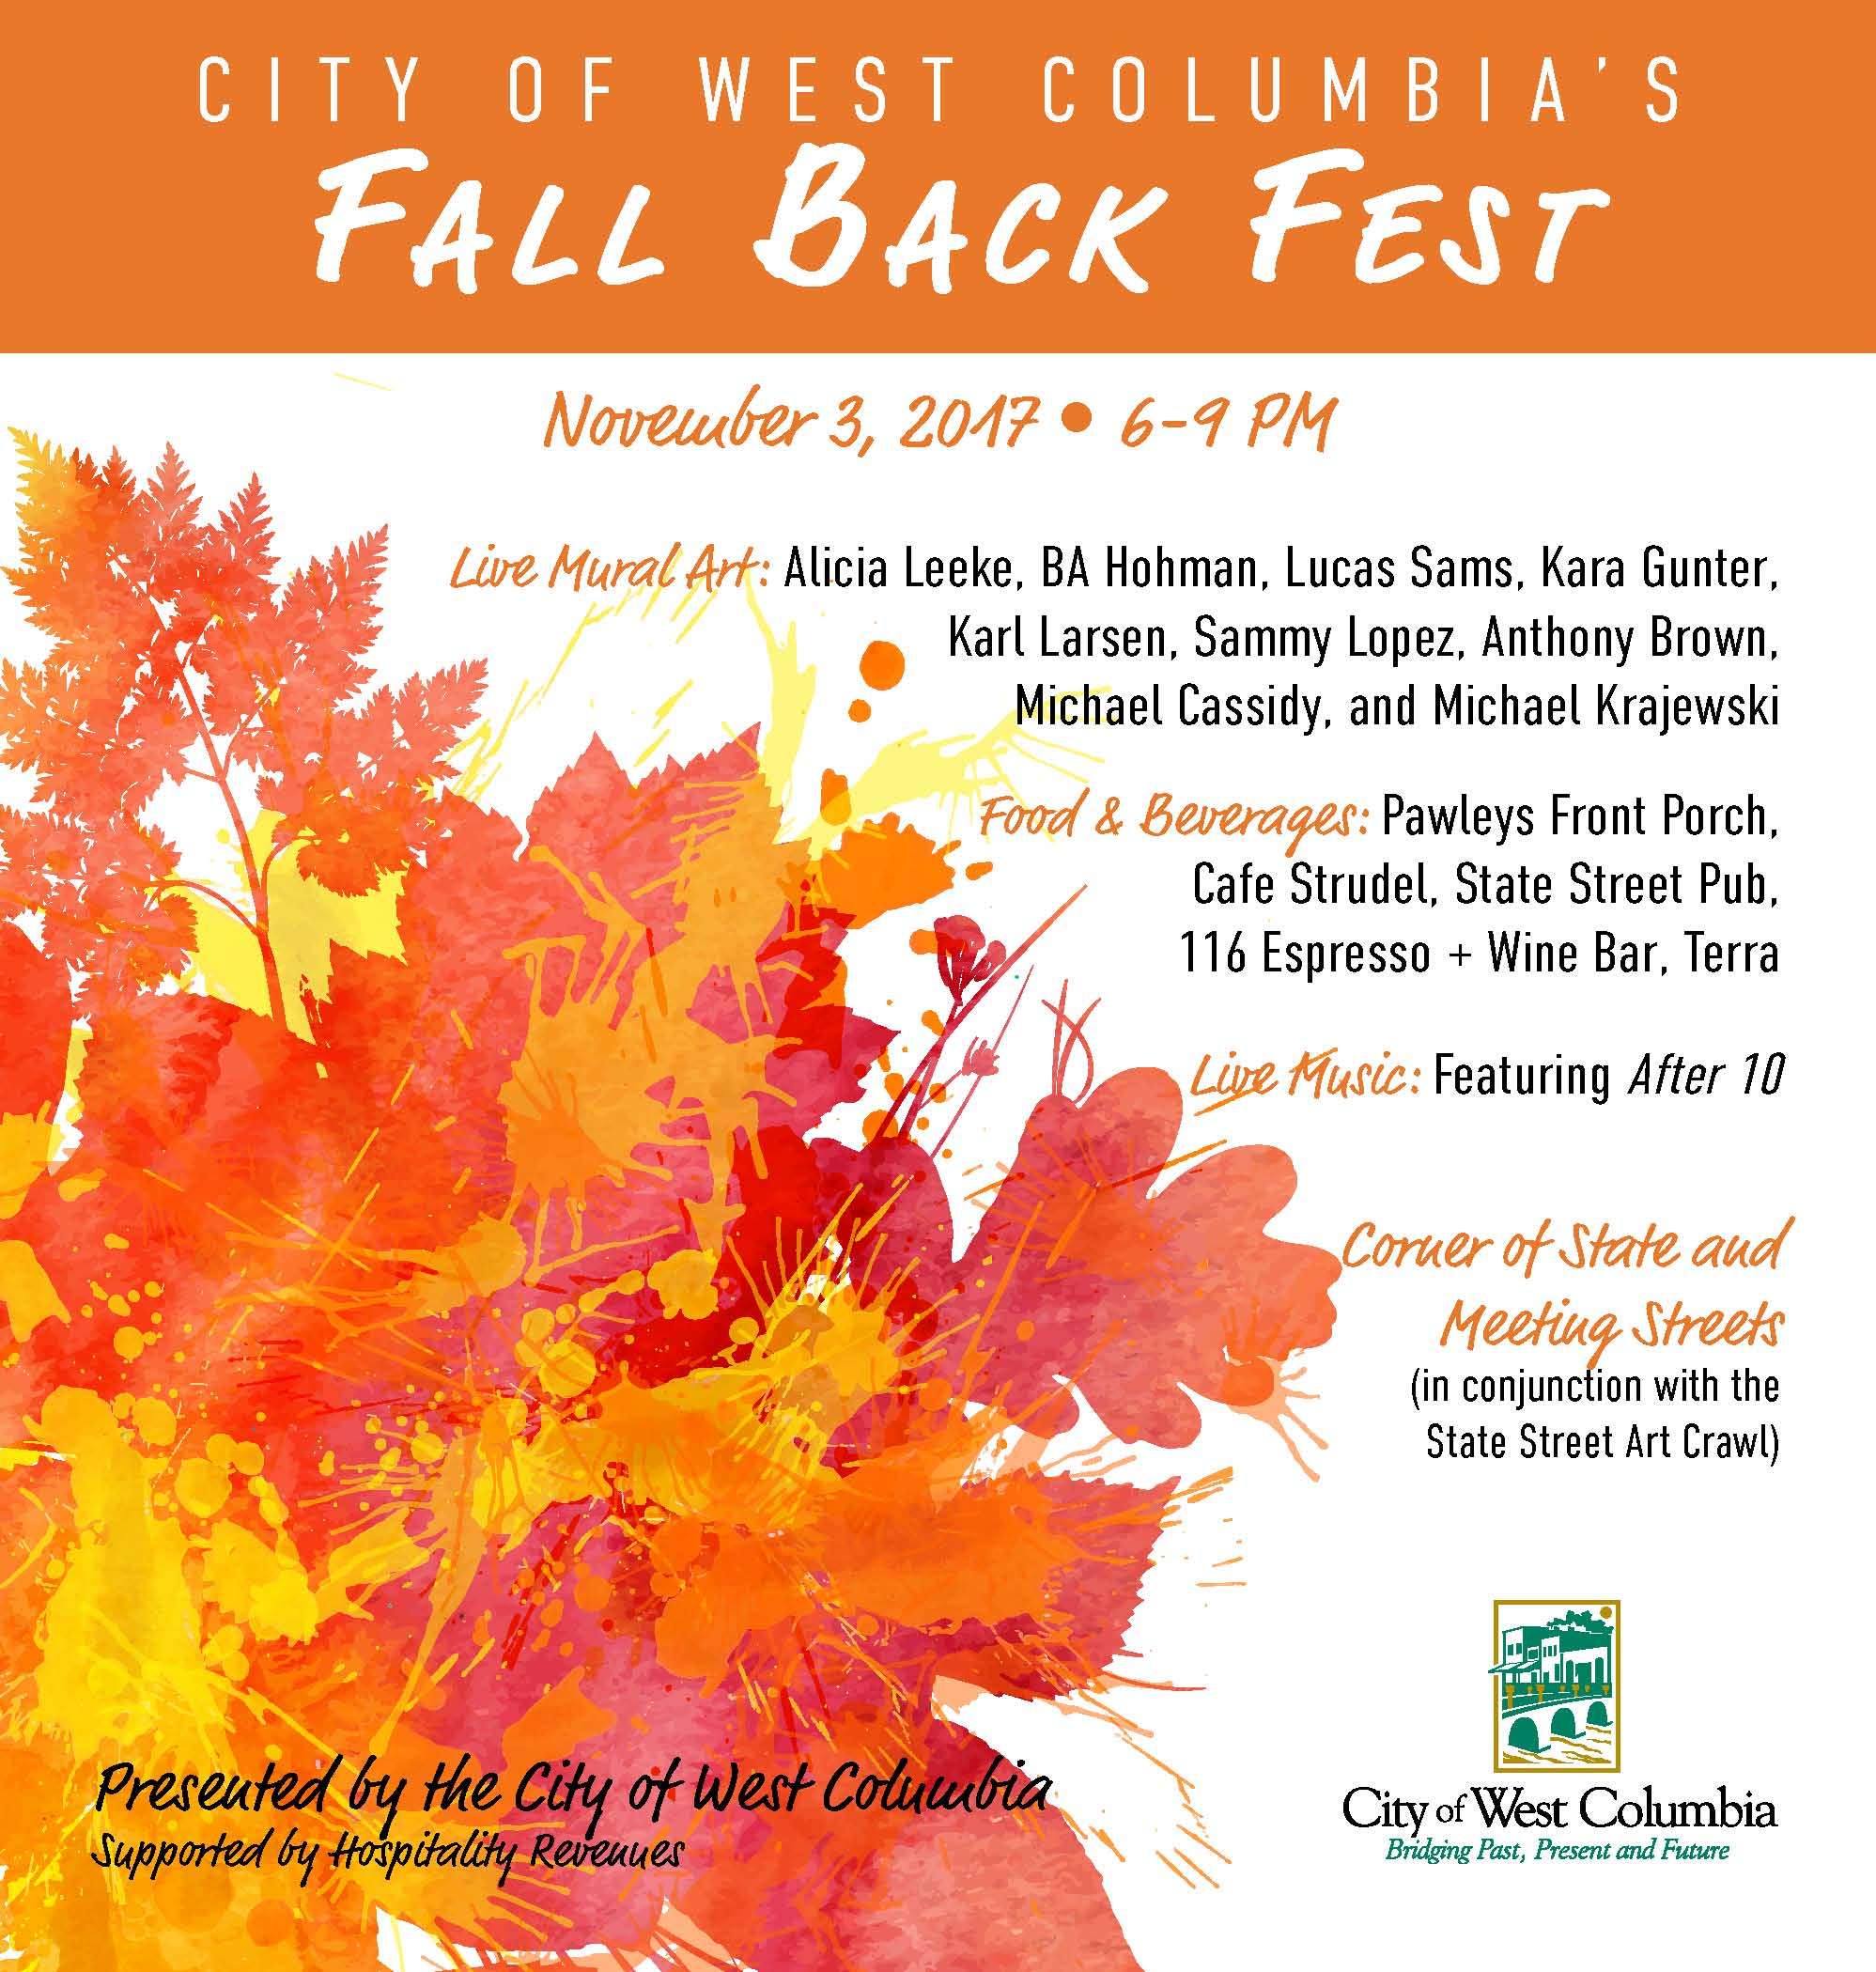 City of West Columbia to Host Fall Back Fest on Friday November 3